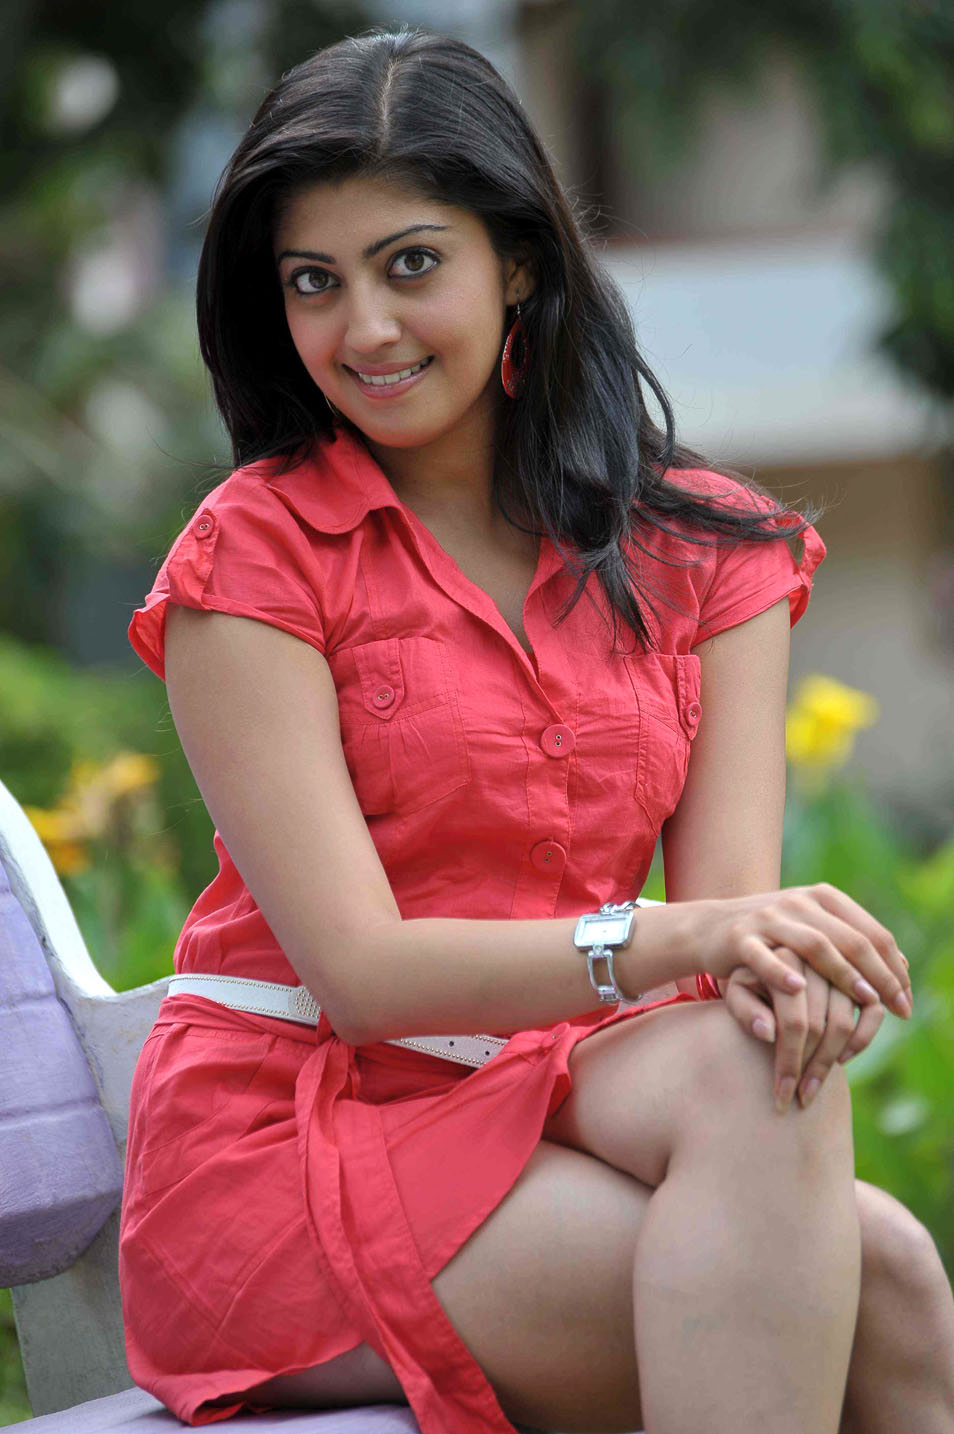 Pranitha-Subhash-hot-sexy-Images Pranitha Subhash 11+ Unseen Bikini Picture, Sizzling Attractive Swimsuit Photographs Age & Toes Wiki